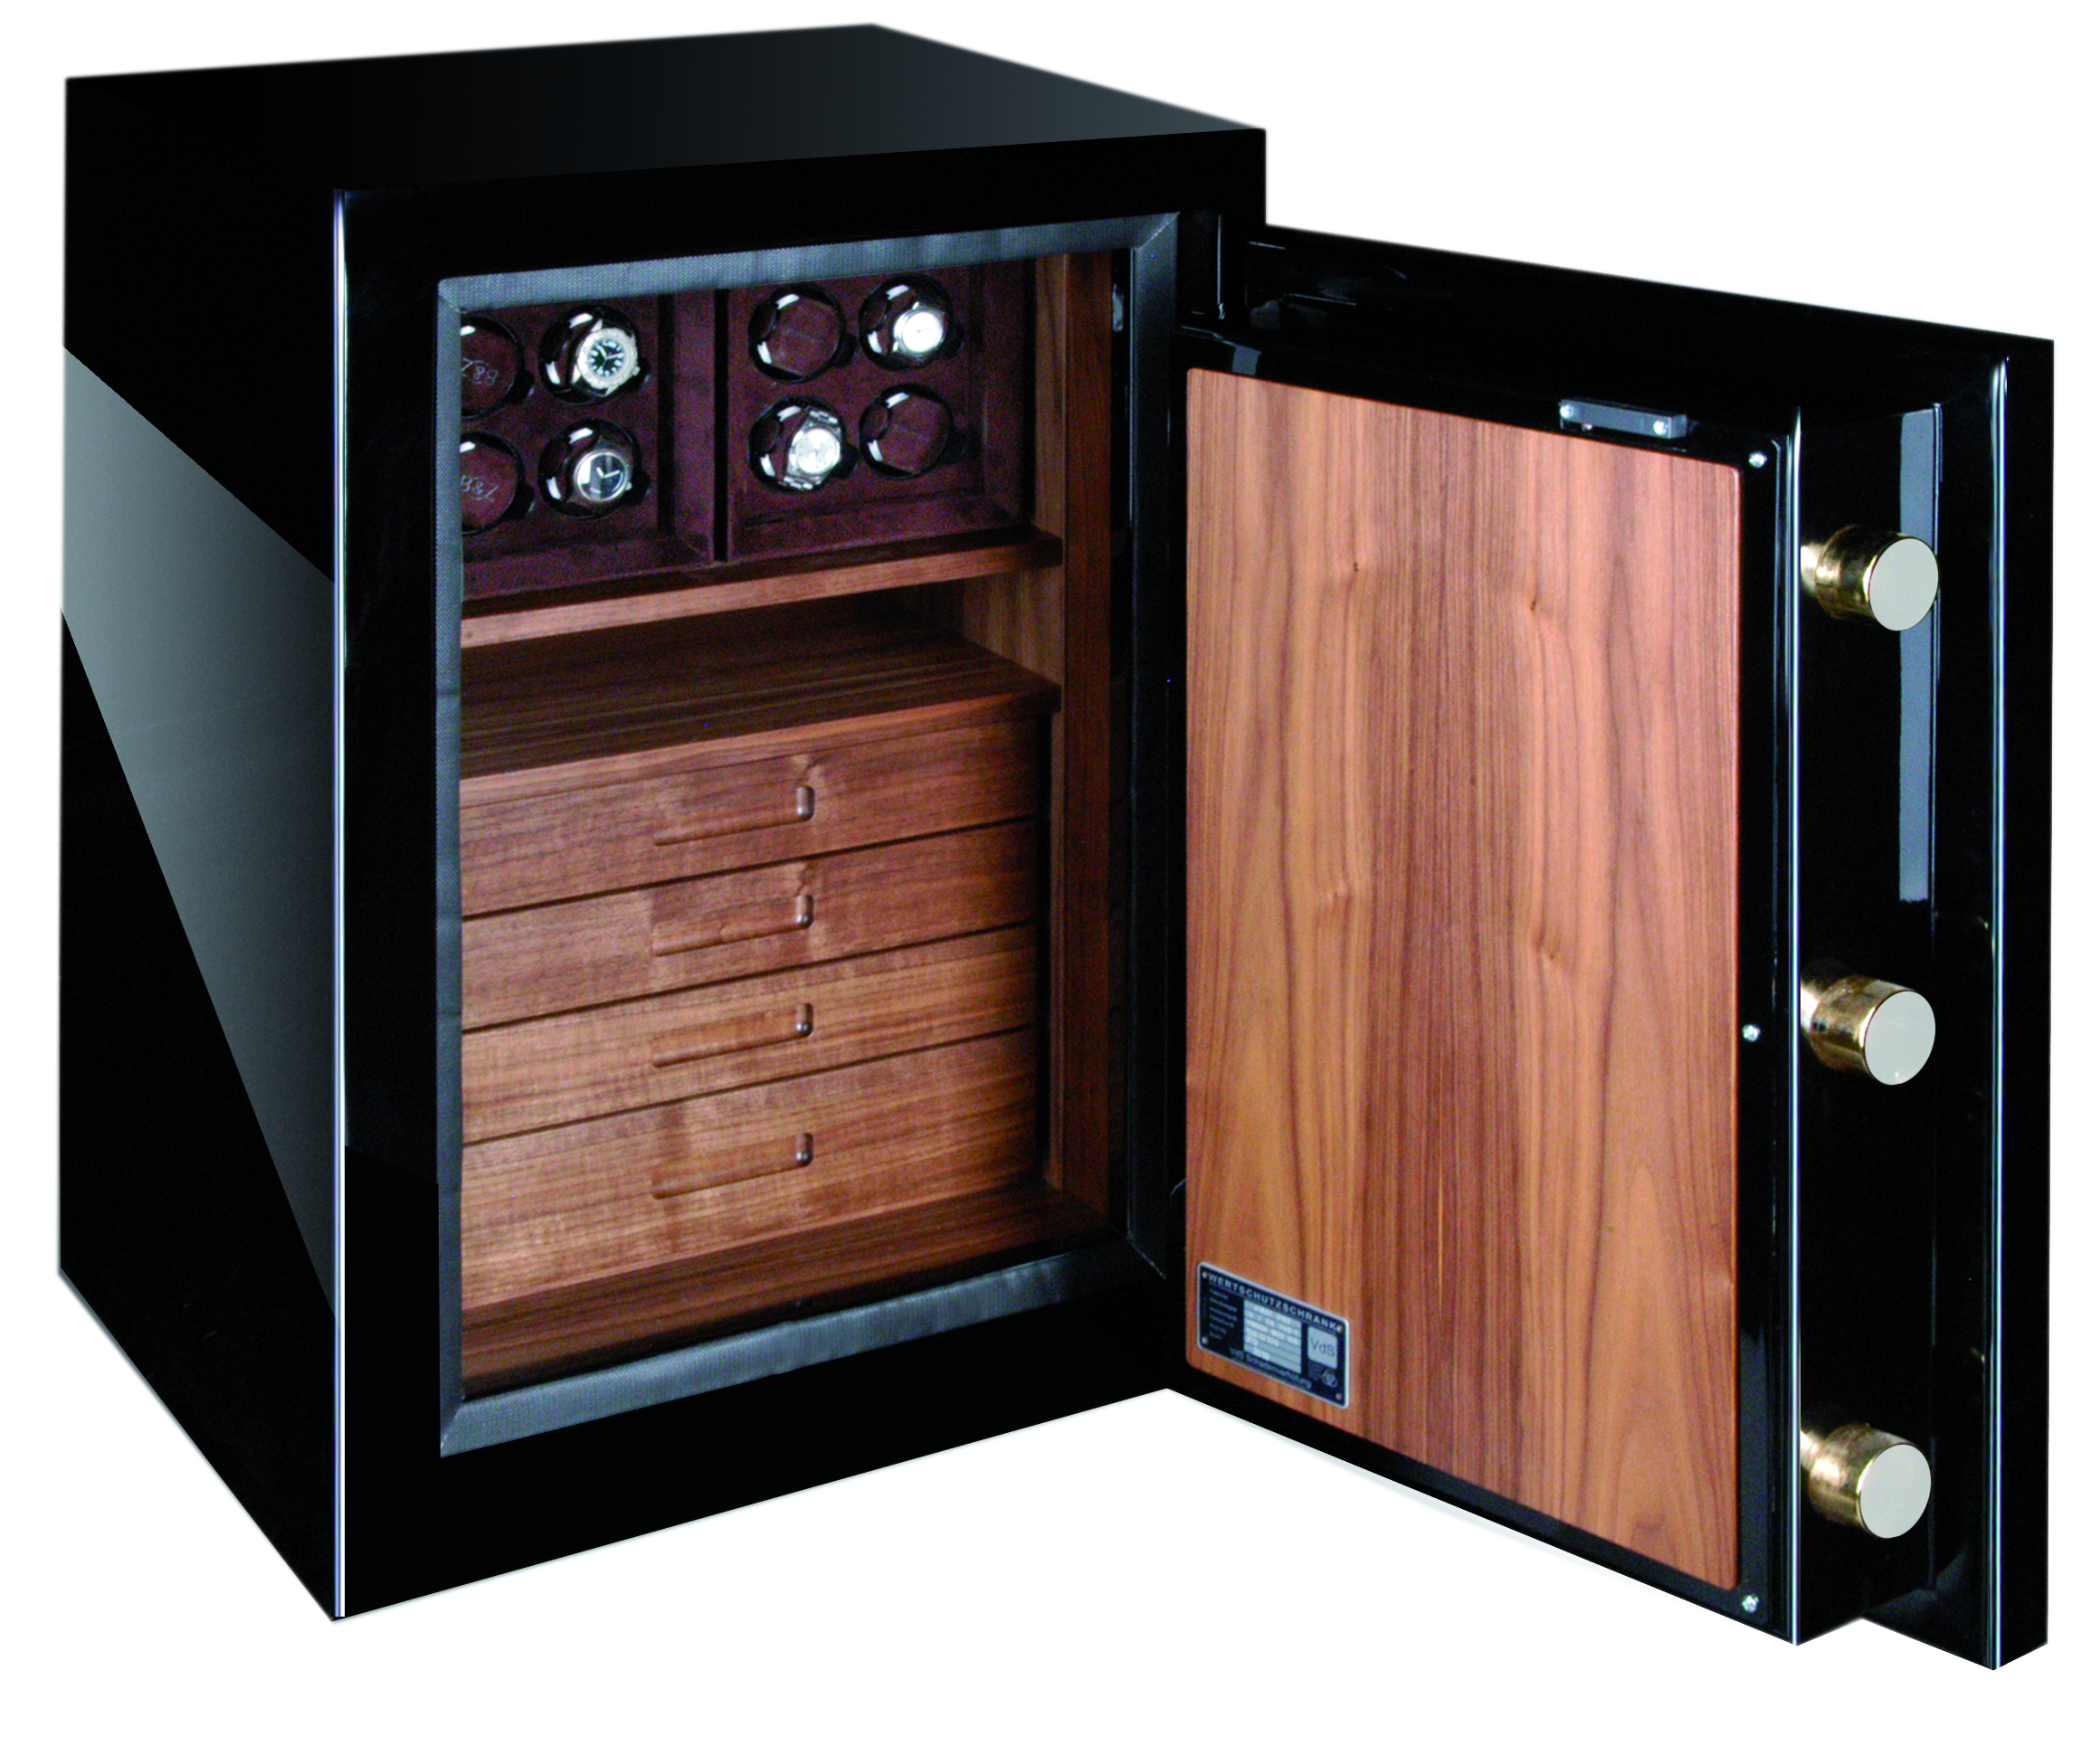 Luxurious and High Quality Watch Safes by Hartmann Tresore